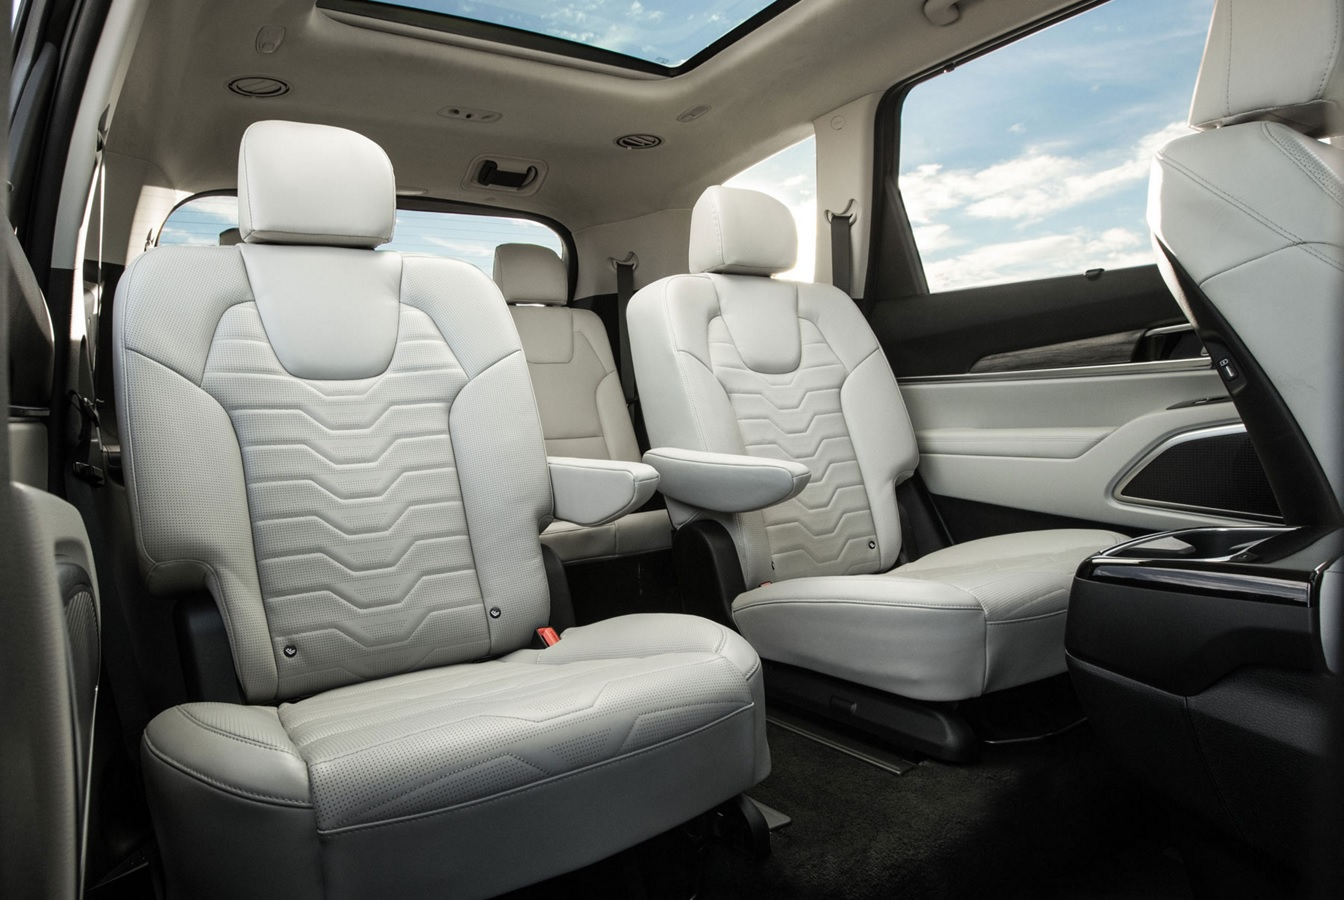 2020 Telluride Rear Seating